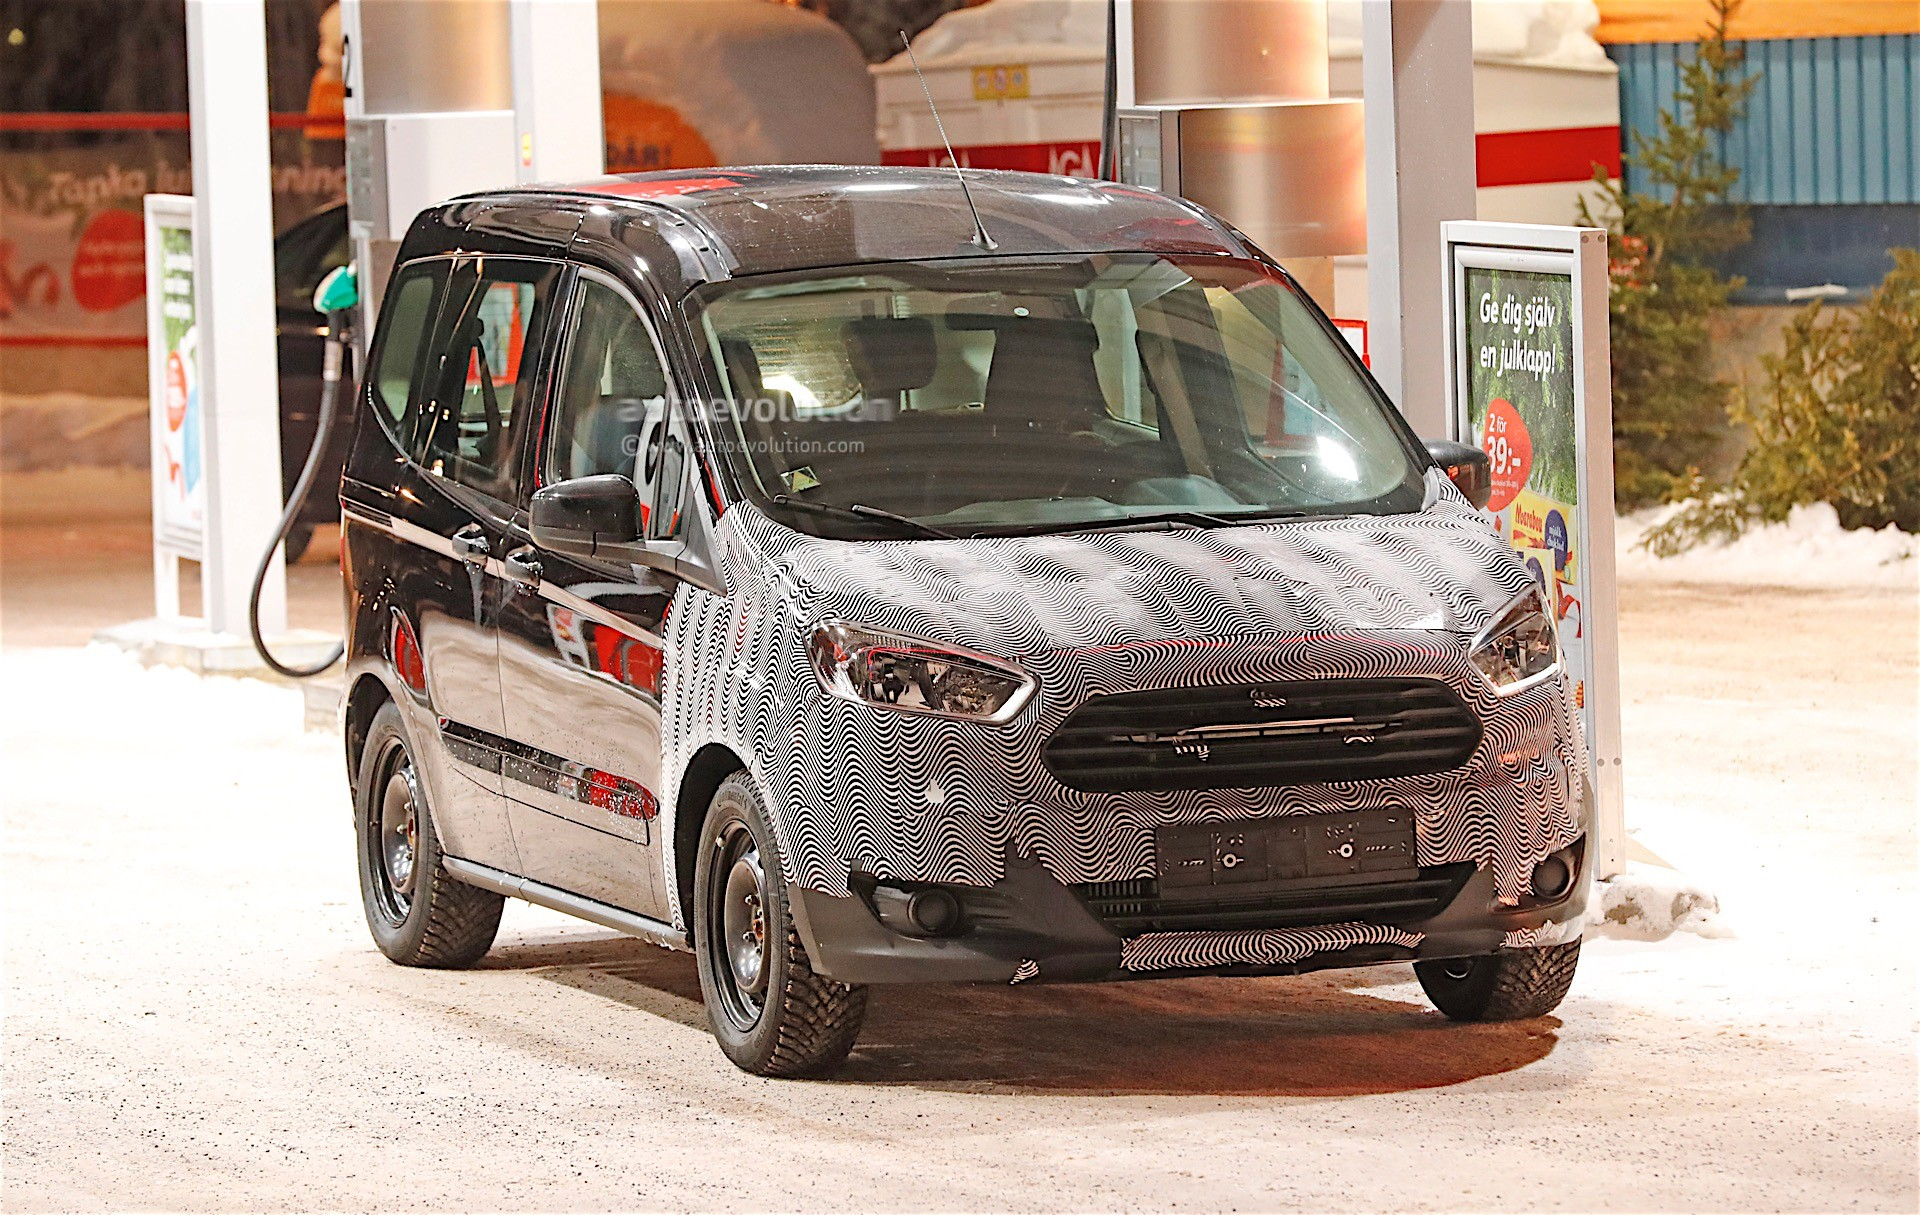 2018 Ford Tourneo Courier Facelift Spied Almost Undisguised ... Ford Tourneo Courier on ford expedition, ford torino, ford f-250, ford ecosport, ford cougar, ford taurus, ford f350, ford fiesta, ford fusion, ford courier, ford focus, ford e-series, ford connect, ford granada, ford caravan red, ford mondeo, ford explorer, ford transit, ford tempo, ford flex,